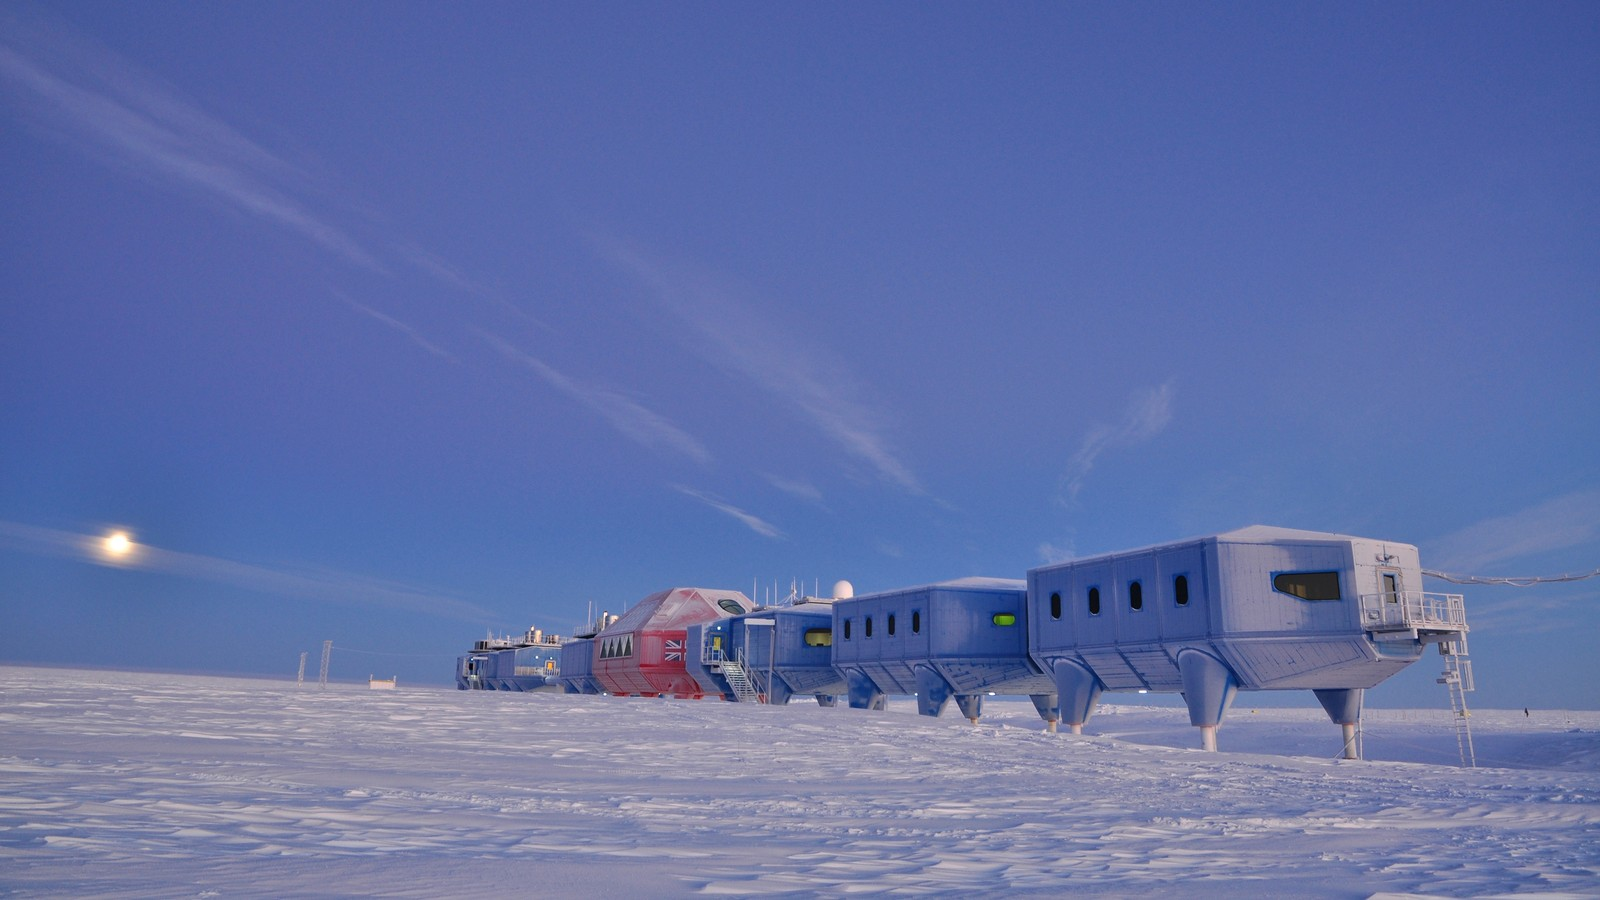 Halley VI British Antarctic Research Station 7